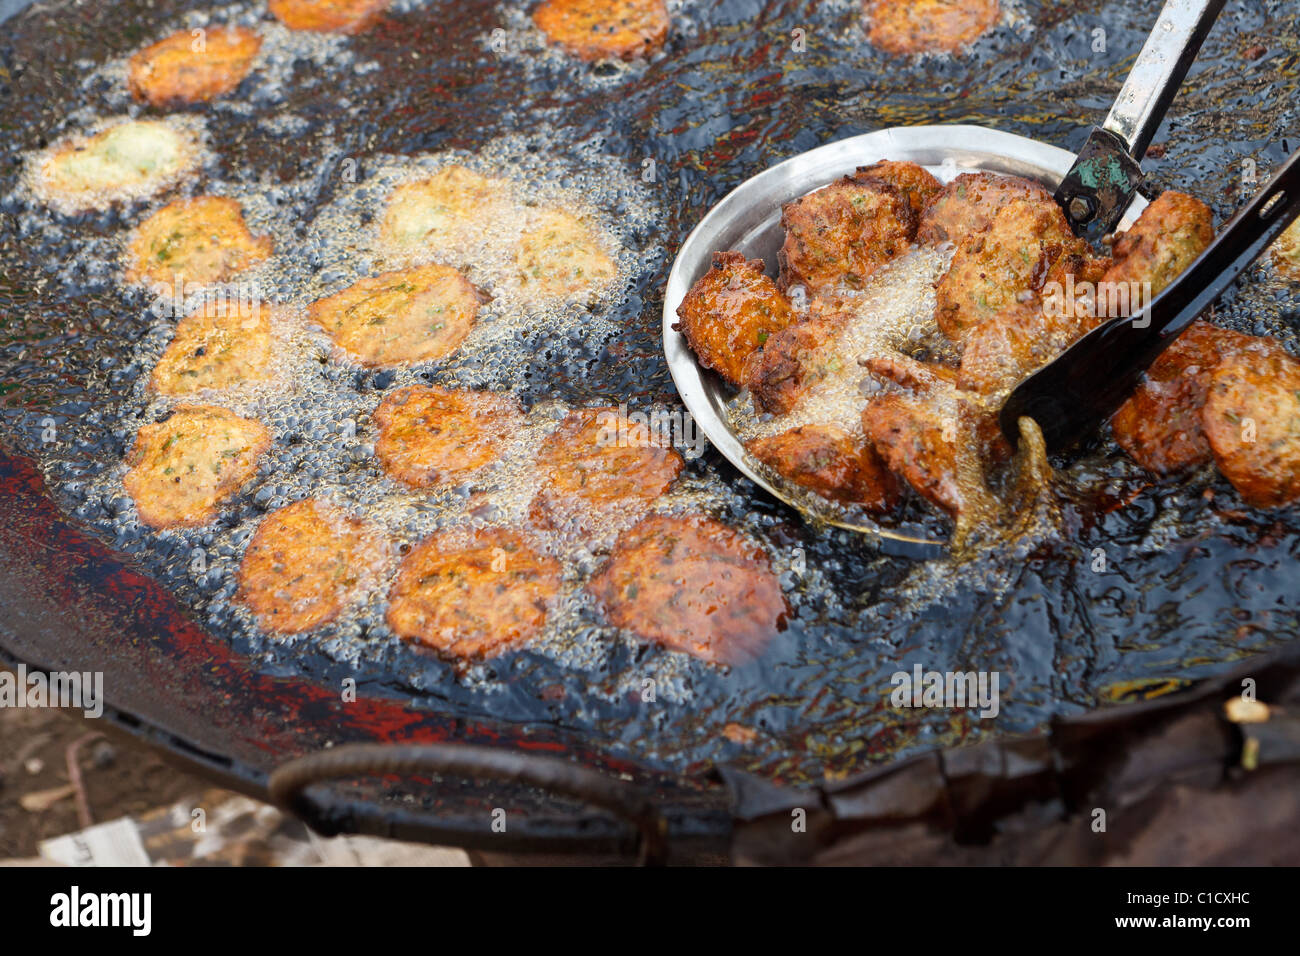 Deep Fried Food being cooked at Bait Al Faqih Friday Market, Yemen - Stock Image